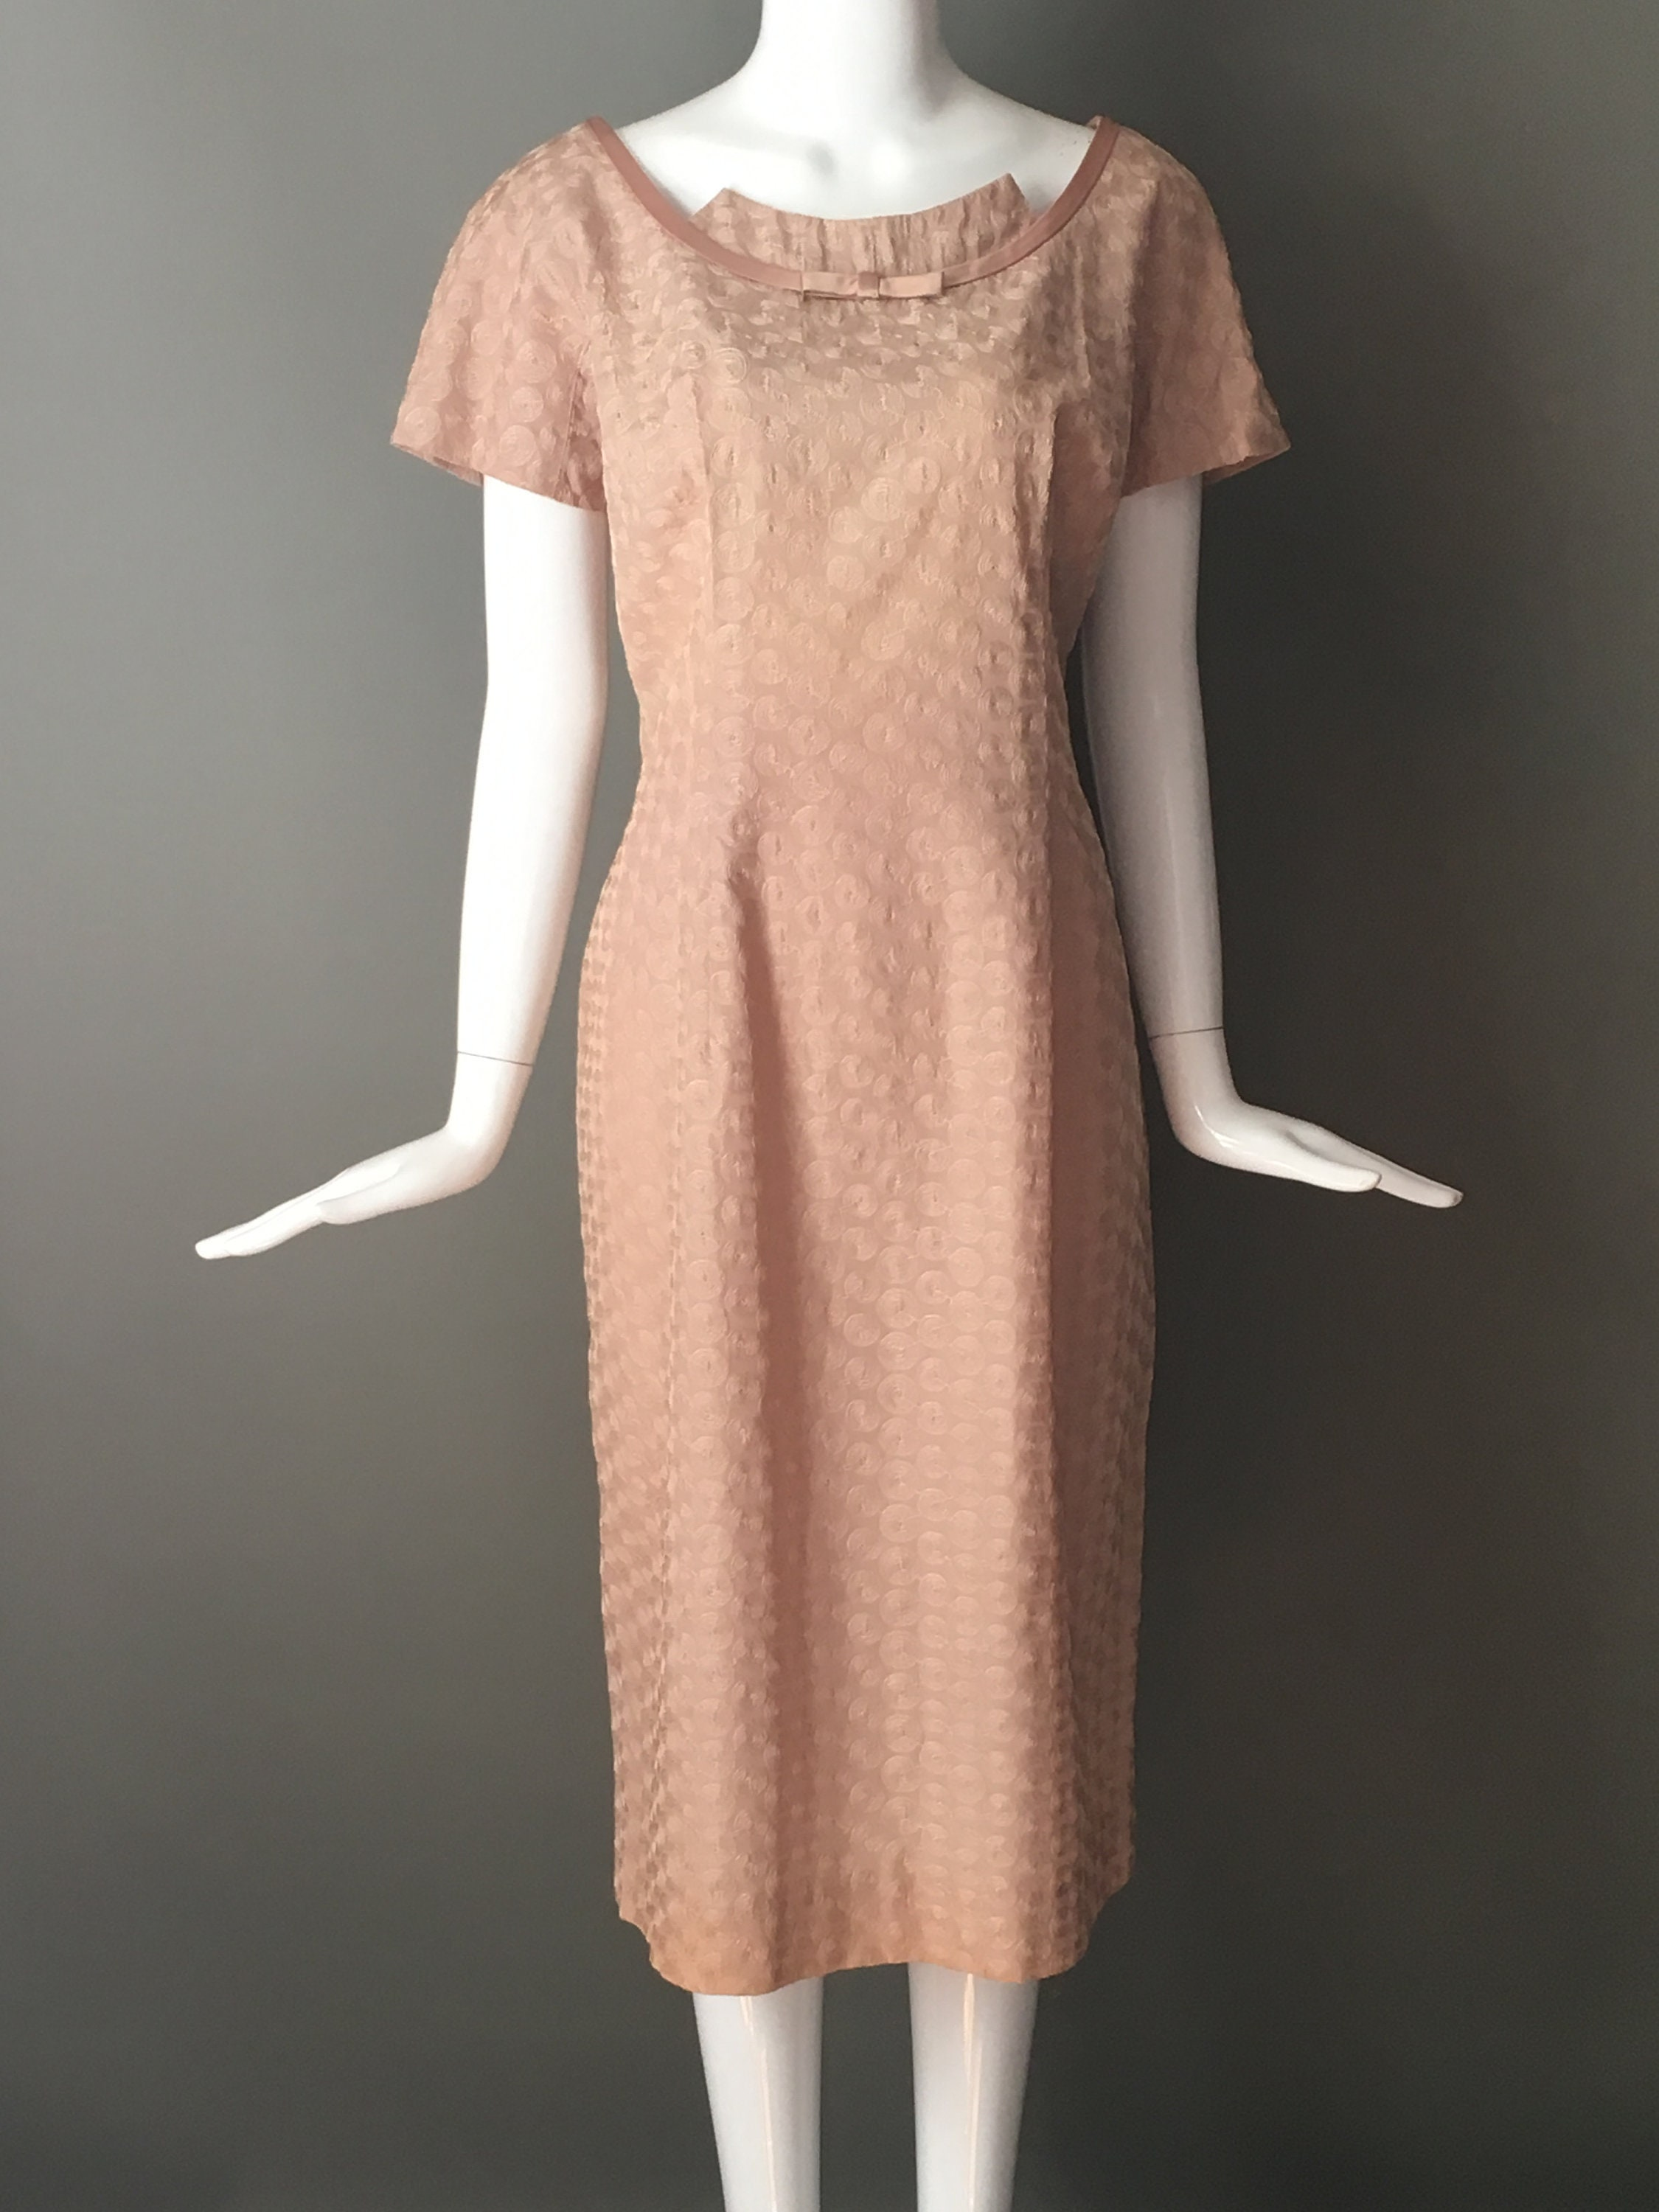 1950s Handbags, Purses, and Evening Bag Styles Gorg Vtg 50S Cocoa Taupe Wiggle Marilyn Textured Swirl Satin Trim Metal Zip Dress 18 Rare L Xl Sizing Mint Condition $45.95 AT vintagedancer.com